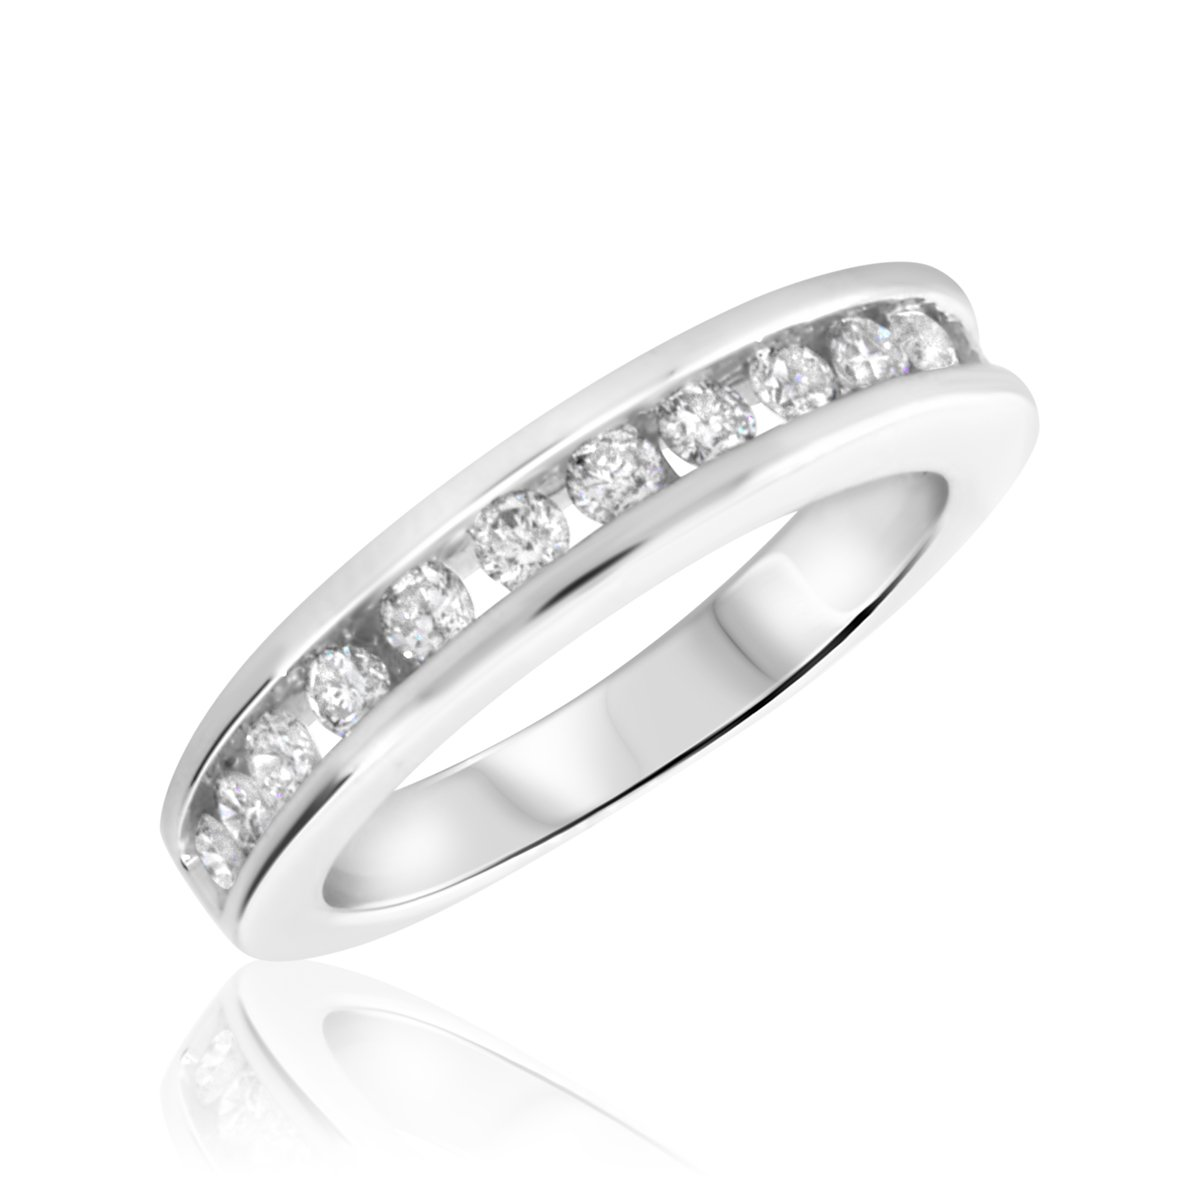 1/2 Carat T.W. Round Cut Diamond Ladies Wedding Band 14K White Gold- Size by My Trio Rings